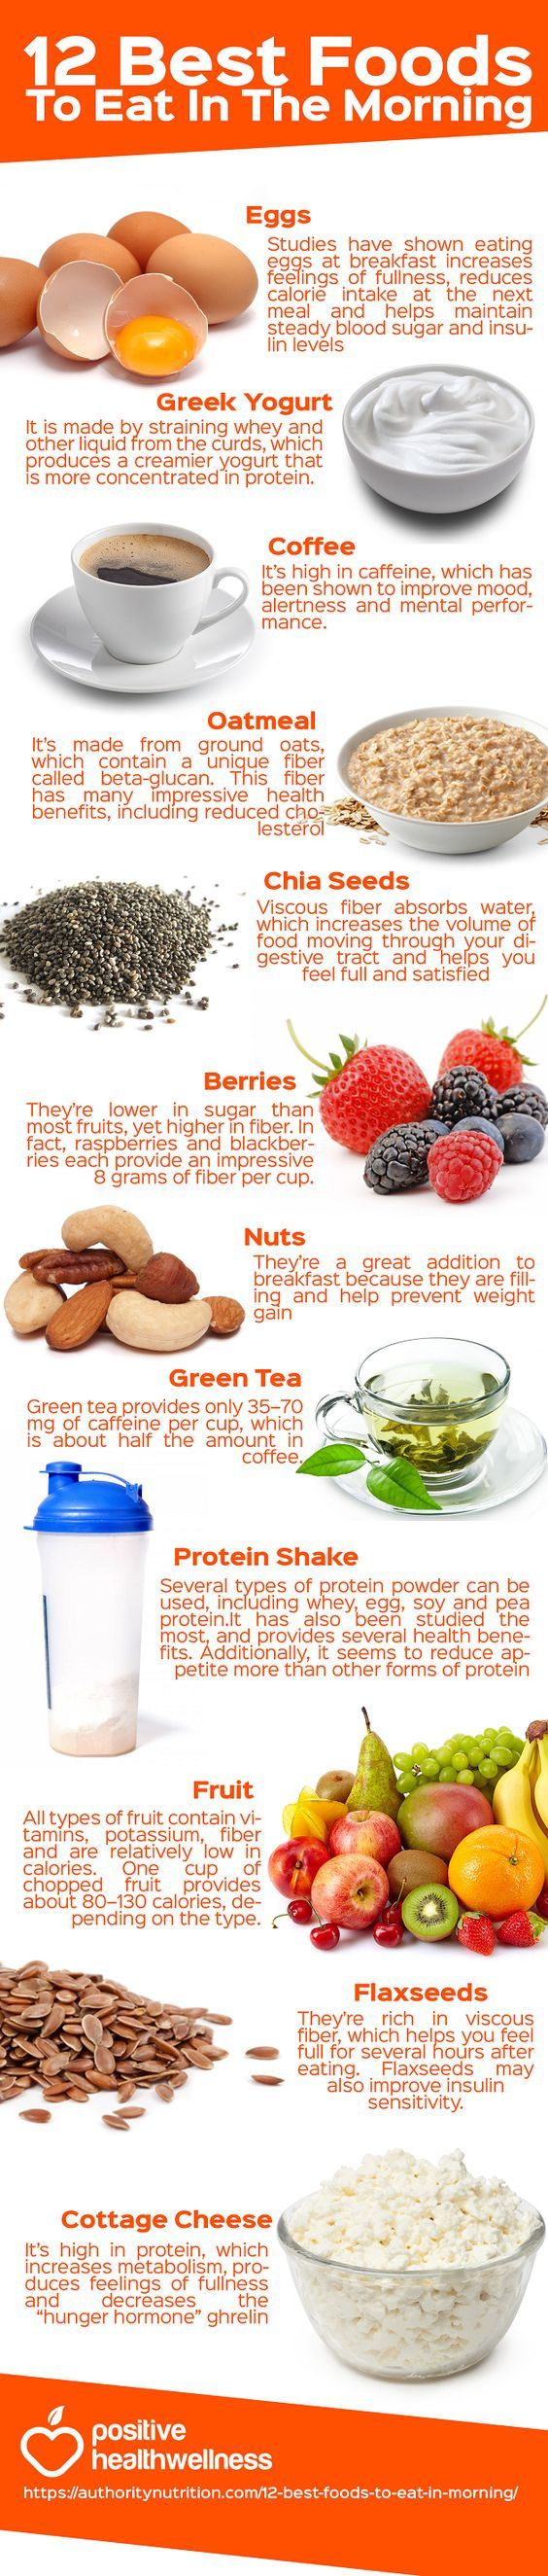 12 best foods to eat in the morning includes fruits, cottage cheese, flaxseeds, protein shake, nuts, berries, chia seeds, eggs, greek yogurt, and coffee.  Get an instant weight loss nutrition plan by plugging in your goals and preferences:   http://www.jorgewellness.com/free-personalized-weight-loss-profile/